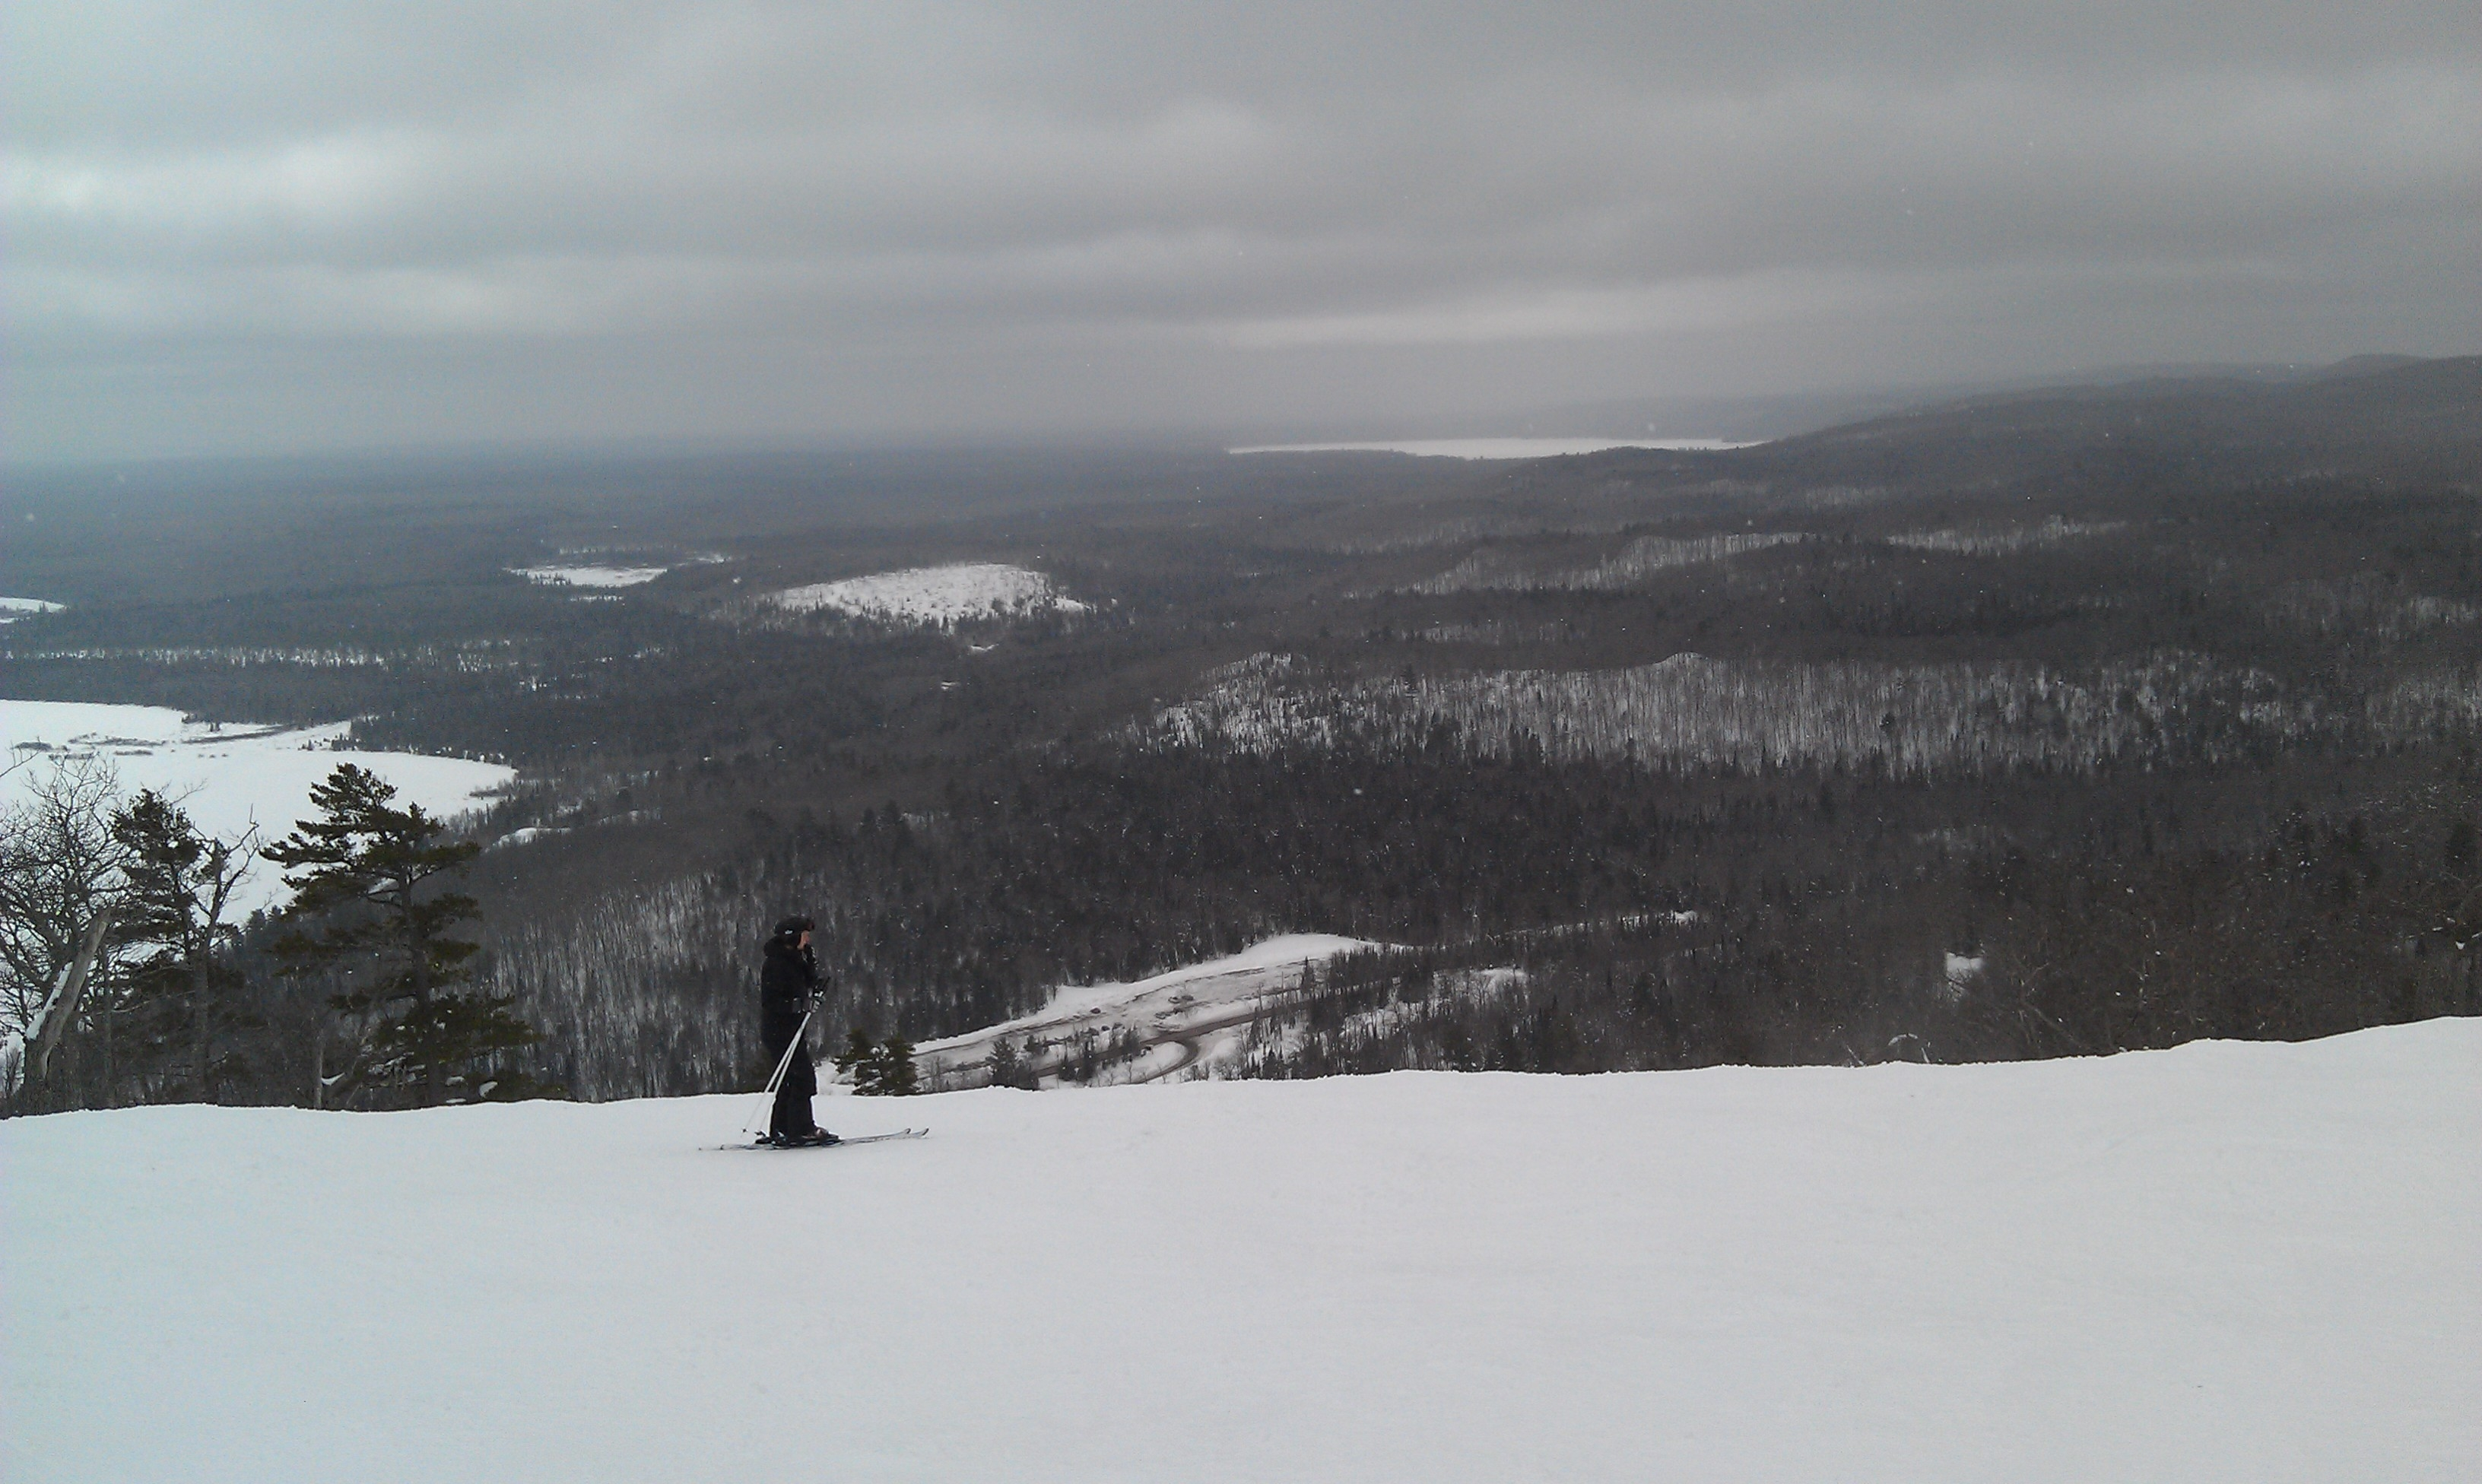 View from near the top